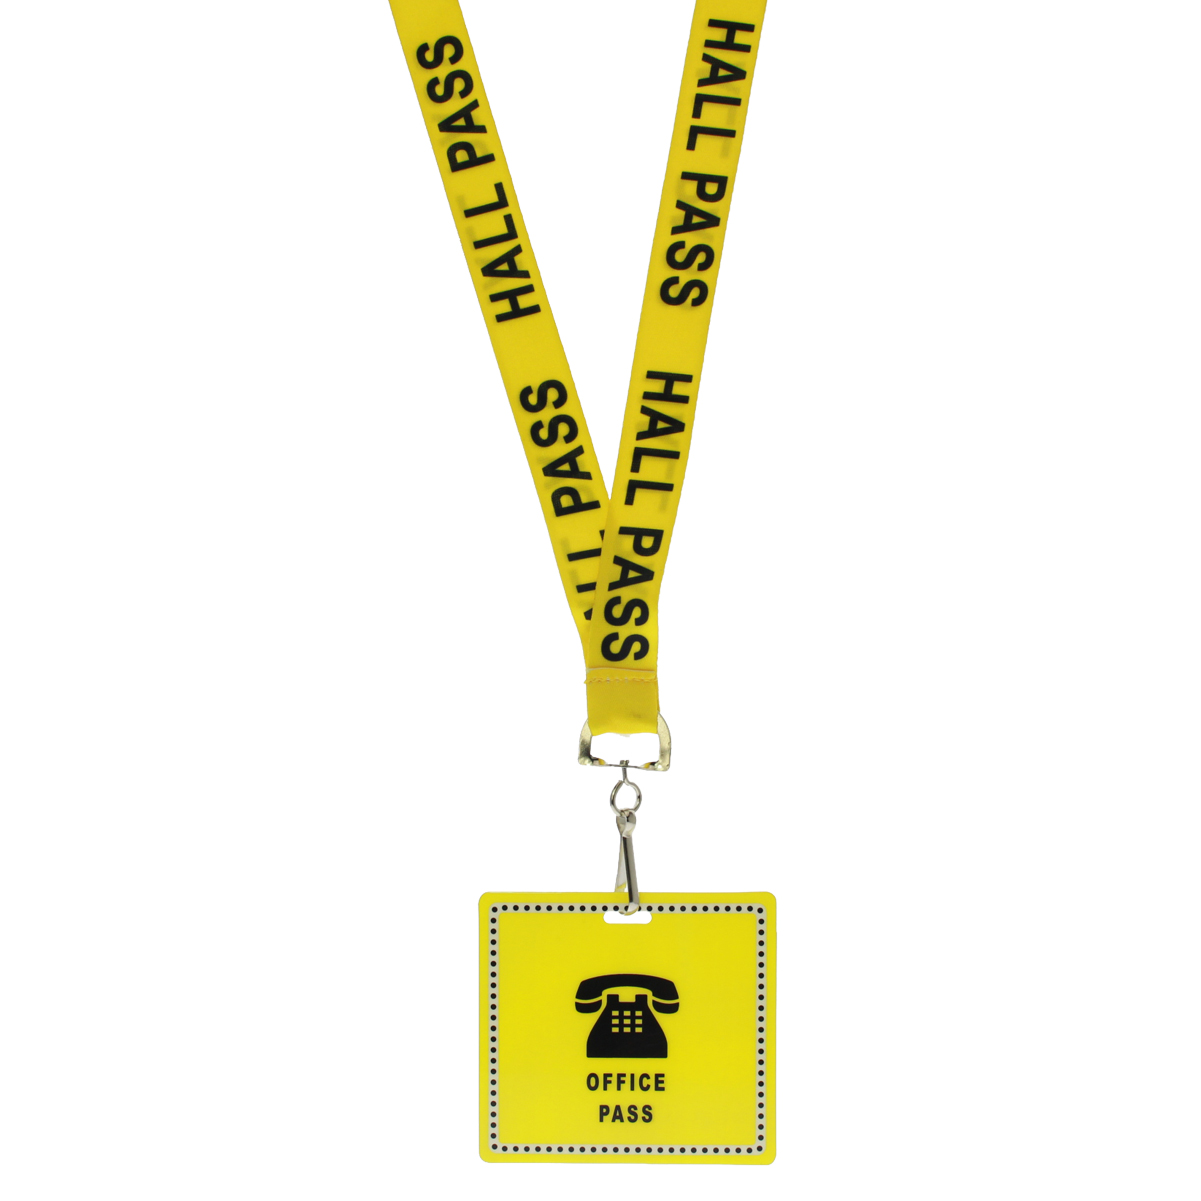 6 pk UNBREAKABLE School Hall Passes with Safety Breakaway Lanyards for Students